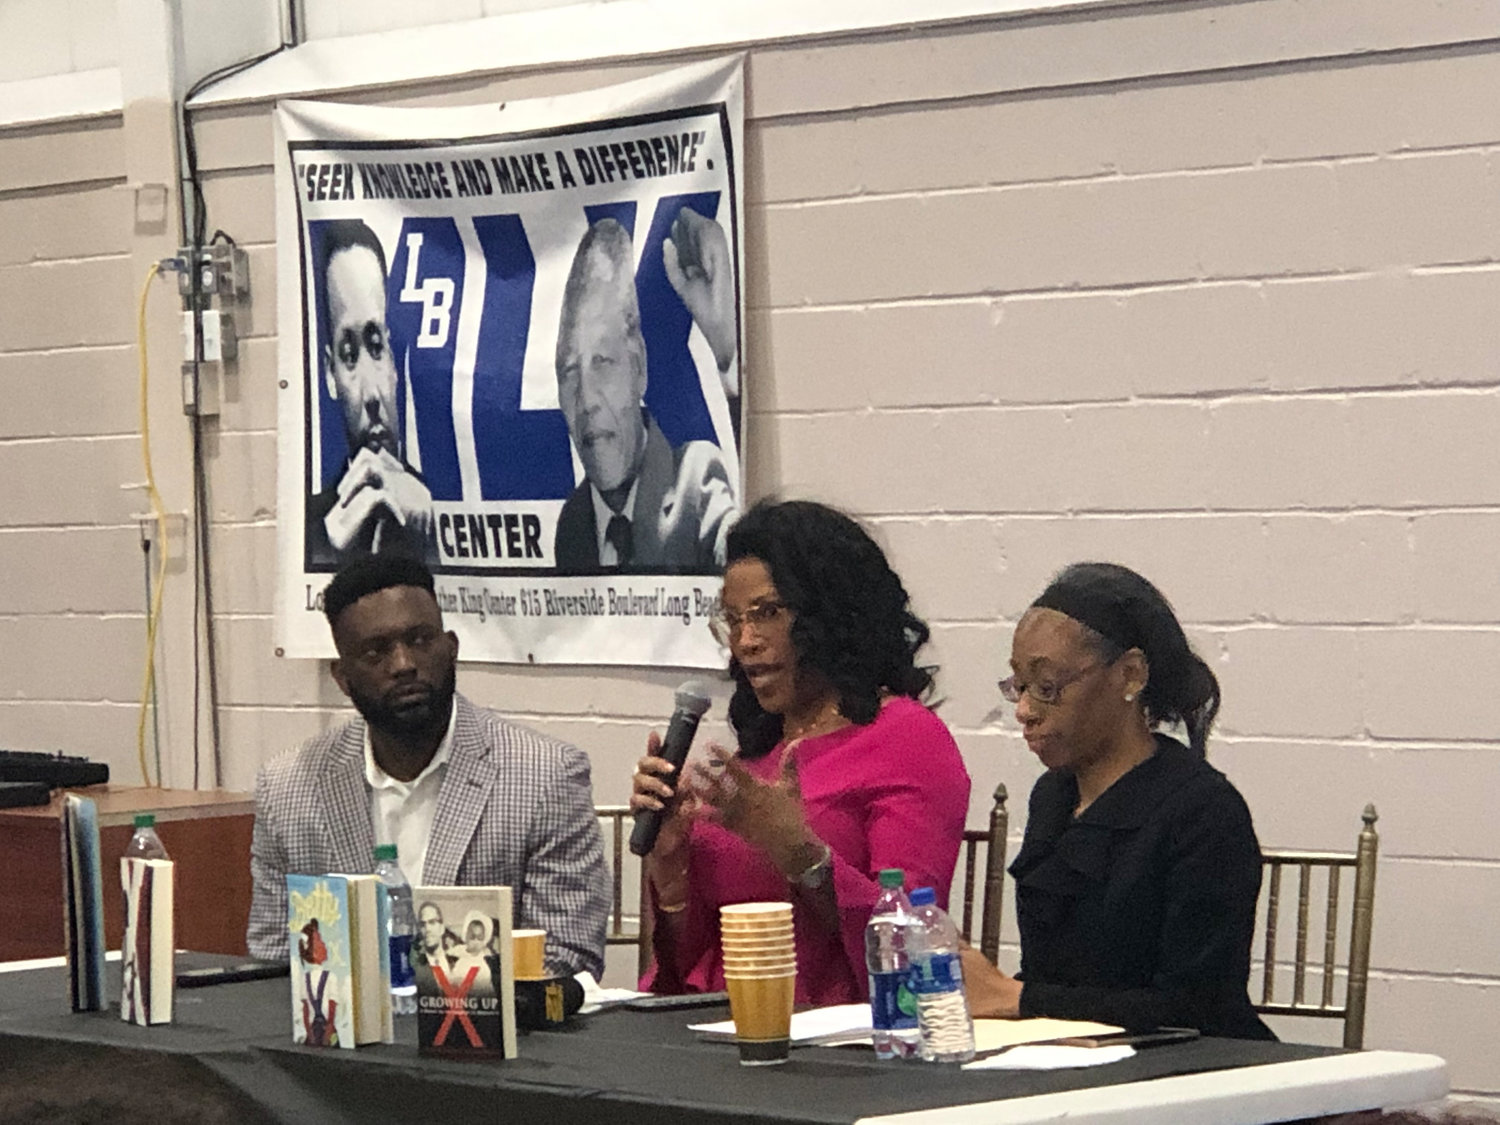 The event was hosted and moderated by MLK Center Chairman James Hodge, left, and City Councilwoman Anissa Moore, right.